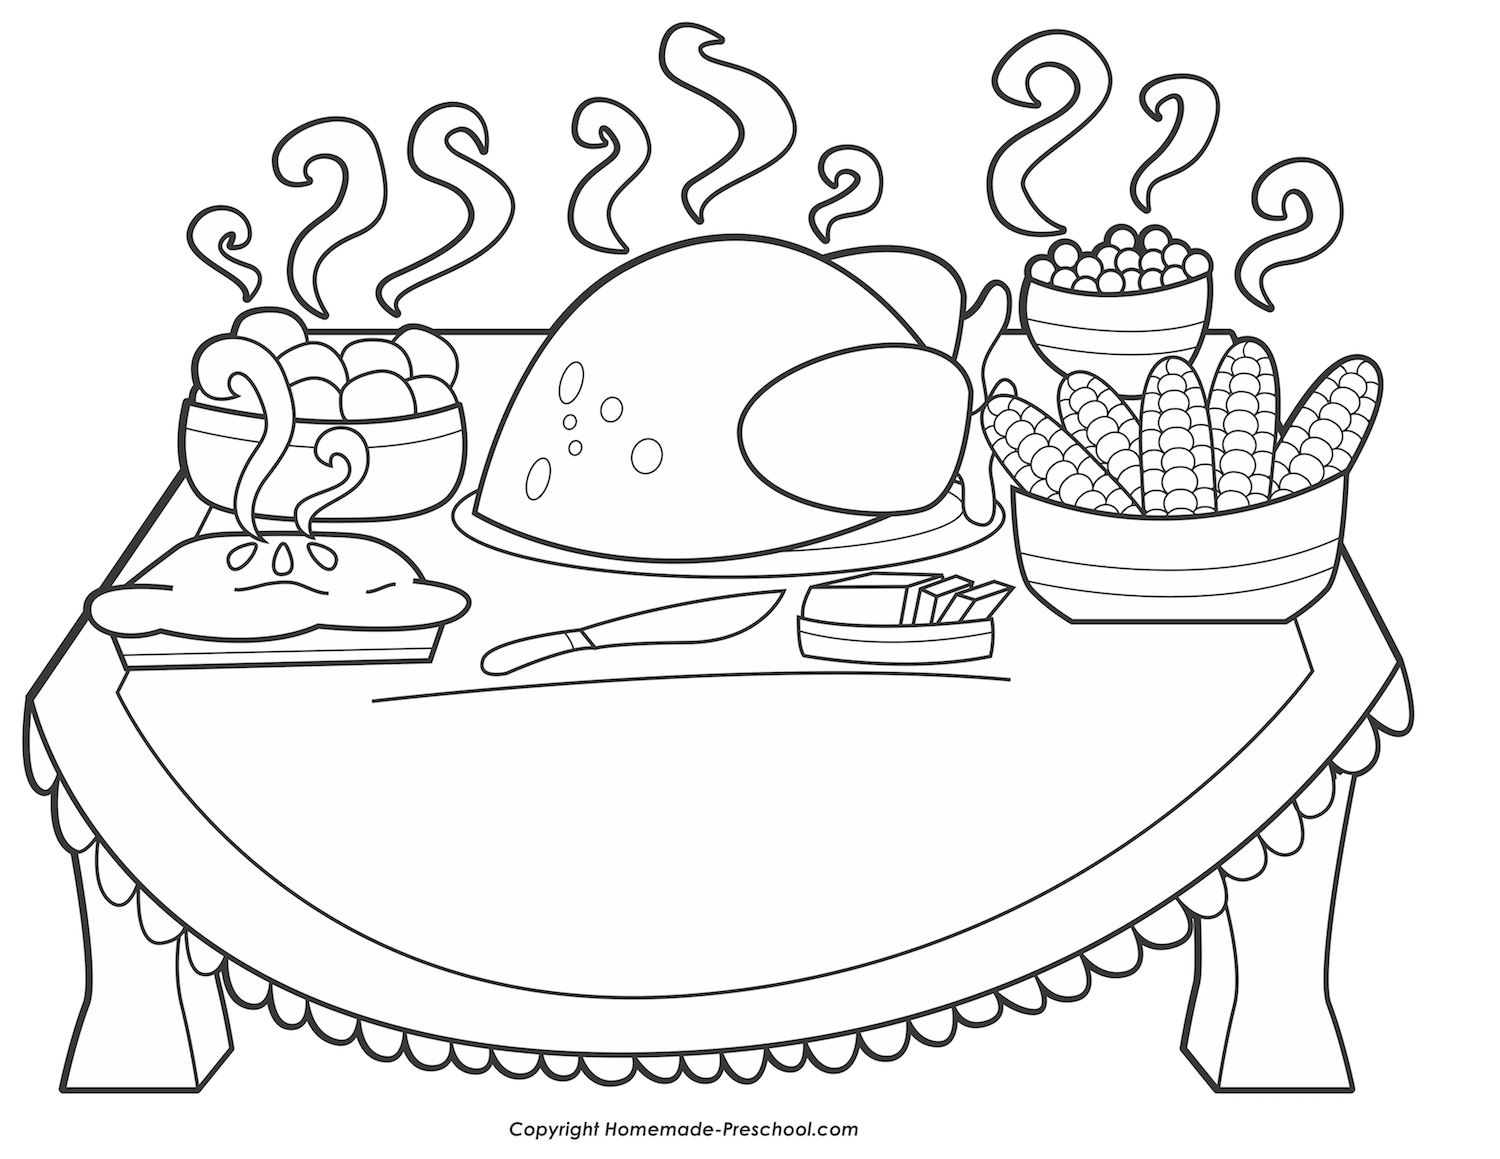 Thanksgiving Dinner Drawing at GetDrawings.com | Free for personal ...